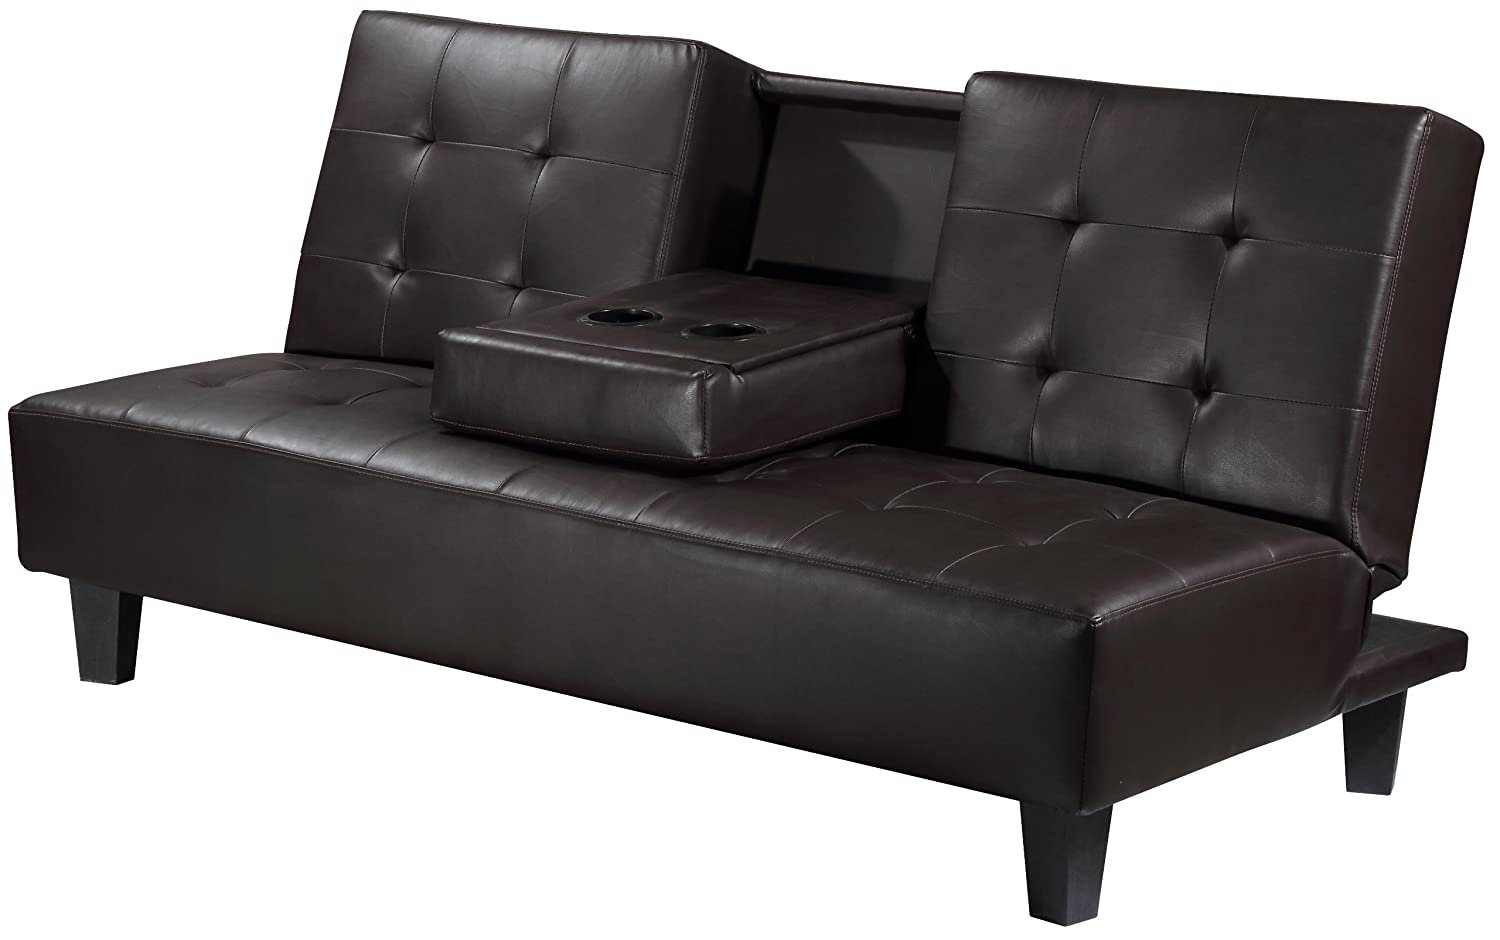 Abbyson Living Bedford Convertible Sofa